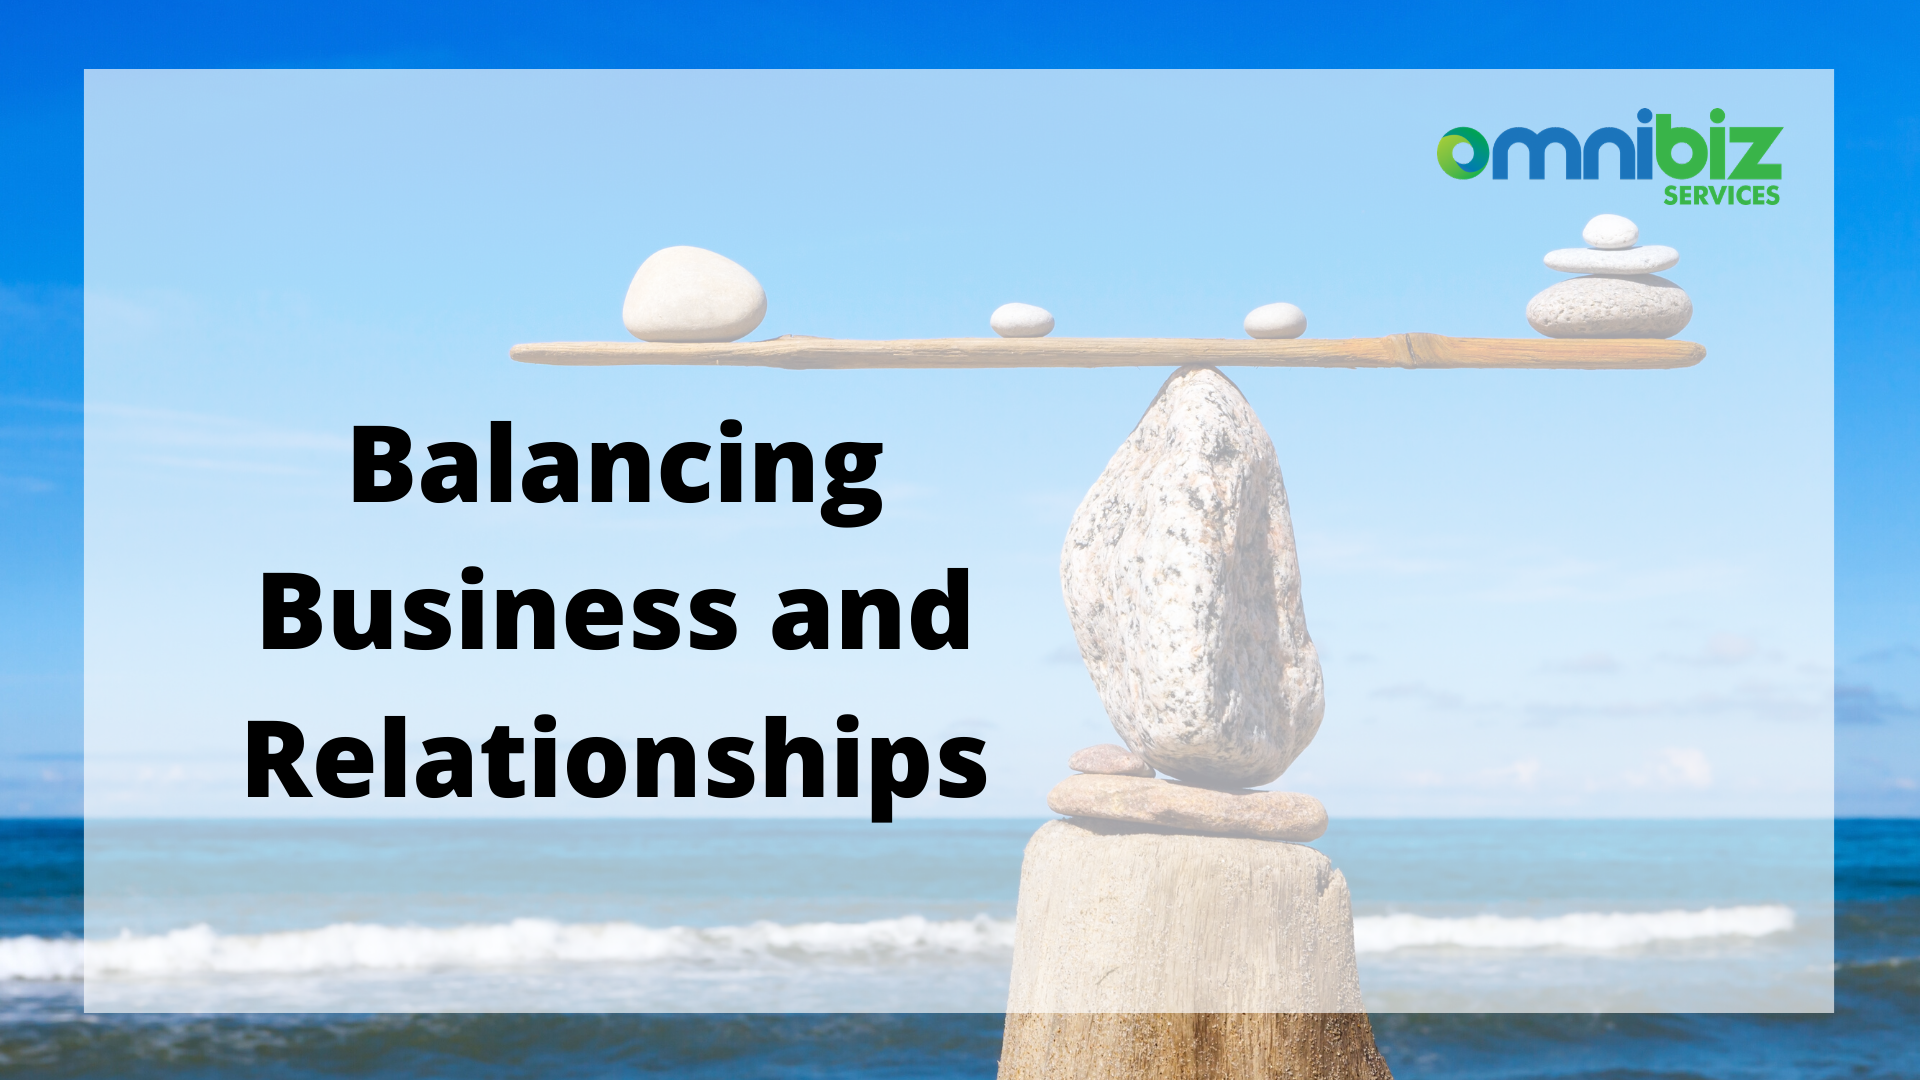 Balancing Business and Relationships